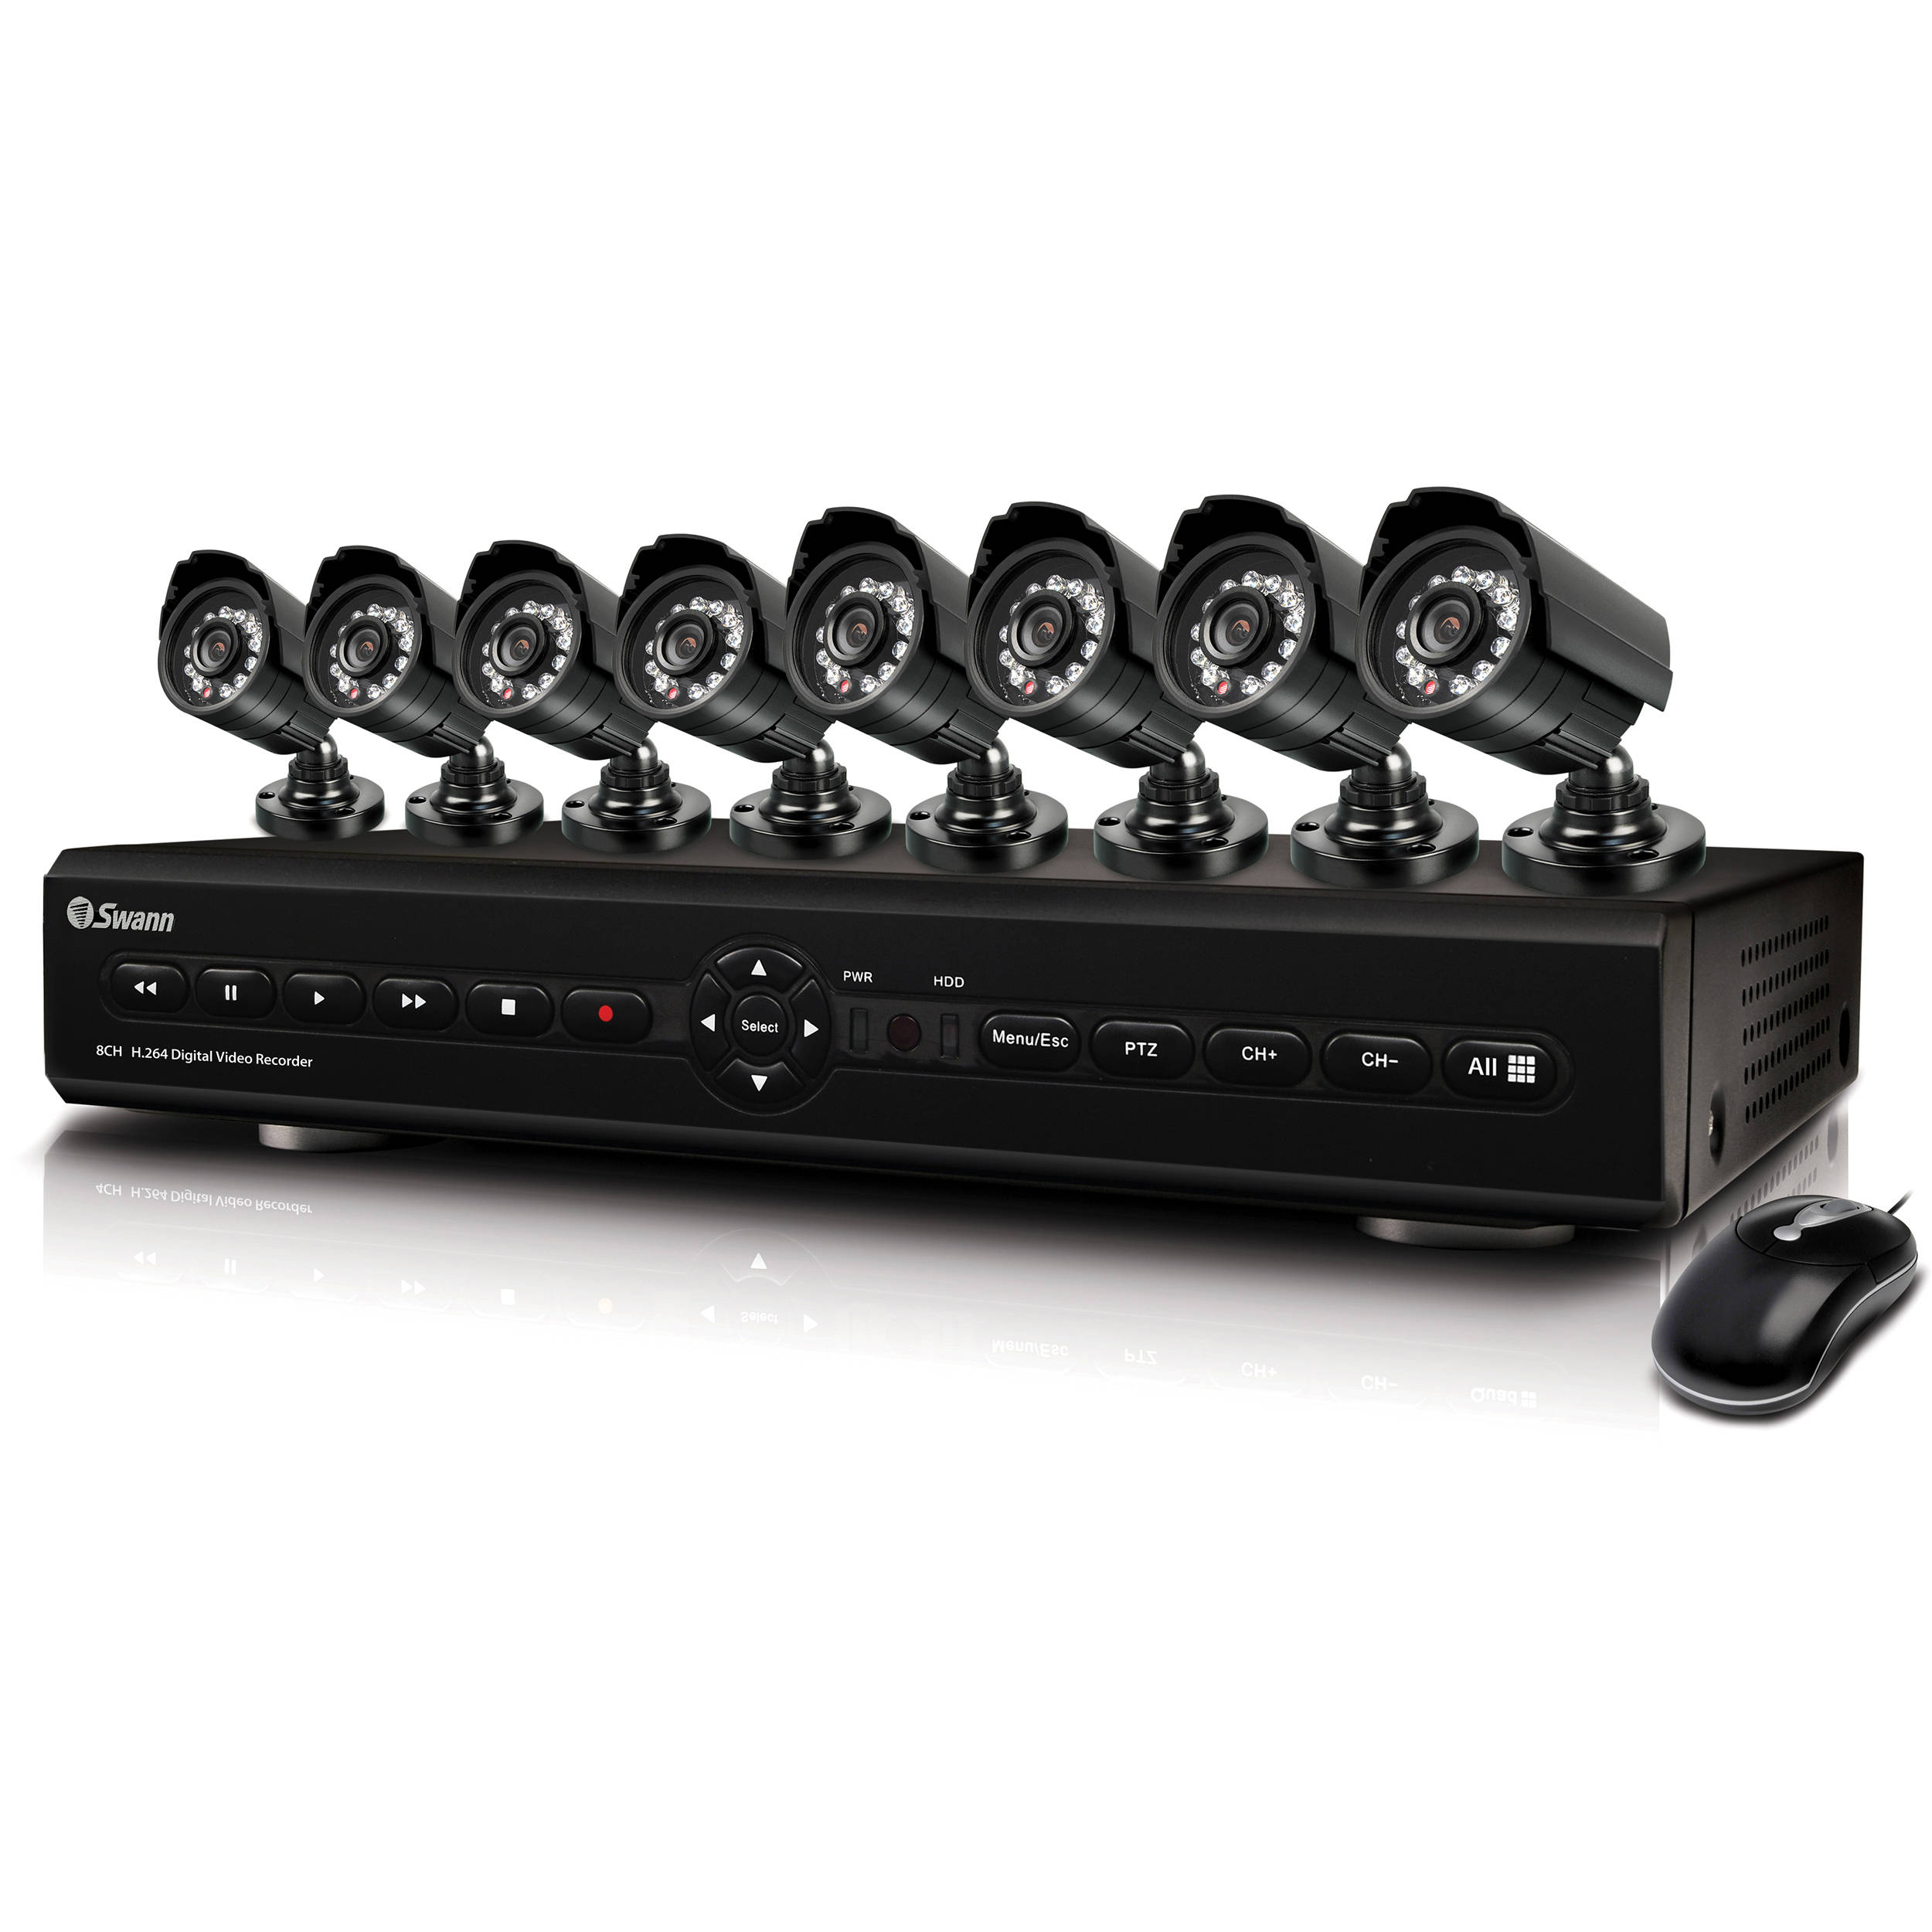 Swann SWDVK-825508 8 Channel DVR with Smartphone Viewing & 8 CCD Cameras